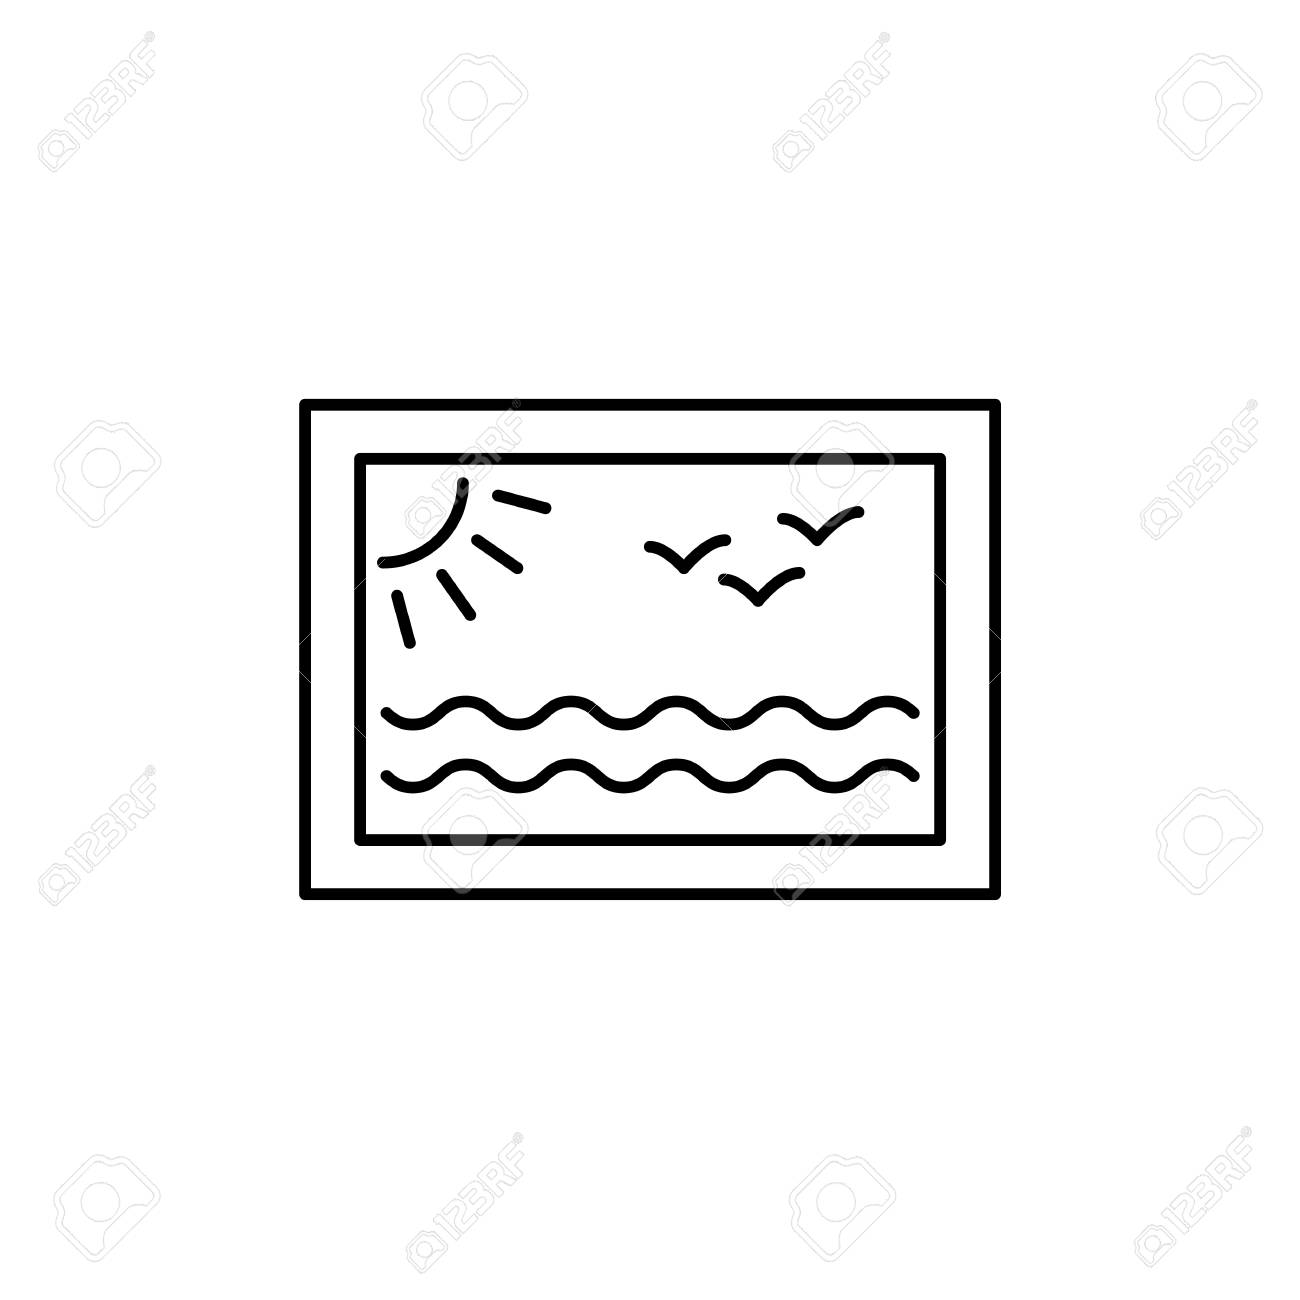 Black White Vector Illustration Of Wall Art Picture Line Icon